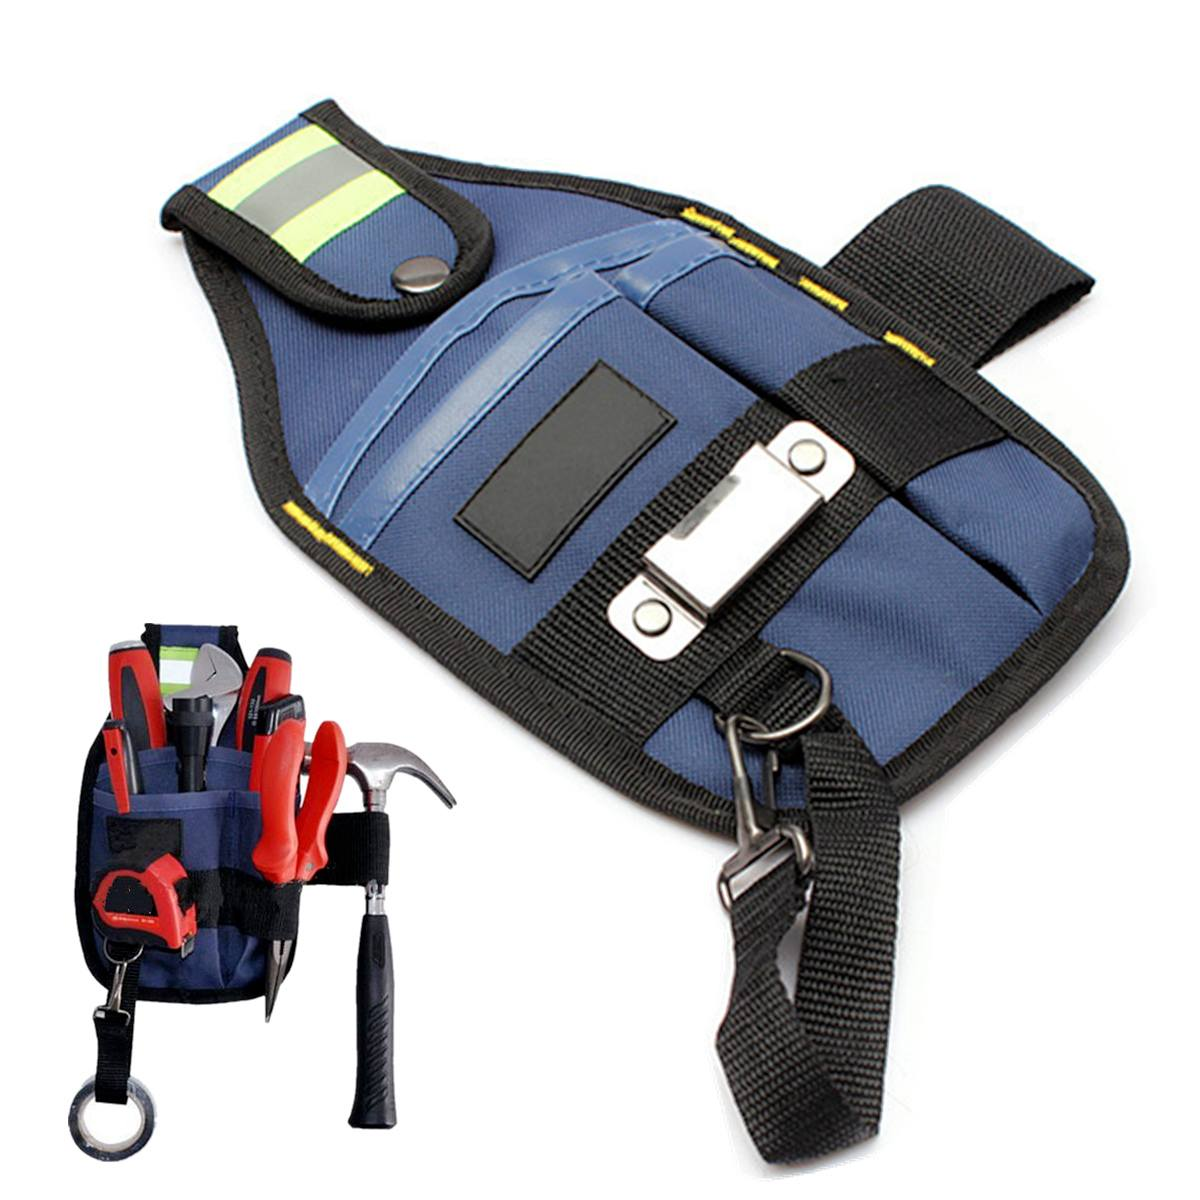 High Capacity 3-Pocke Tool Bag Waist Pockets Electrician Tool Bag Oganizer Carrying Pouch Tools Bag Belt Waist Pocket Case